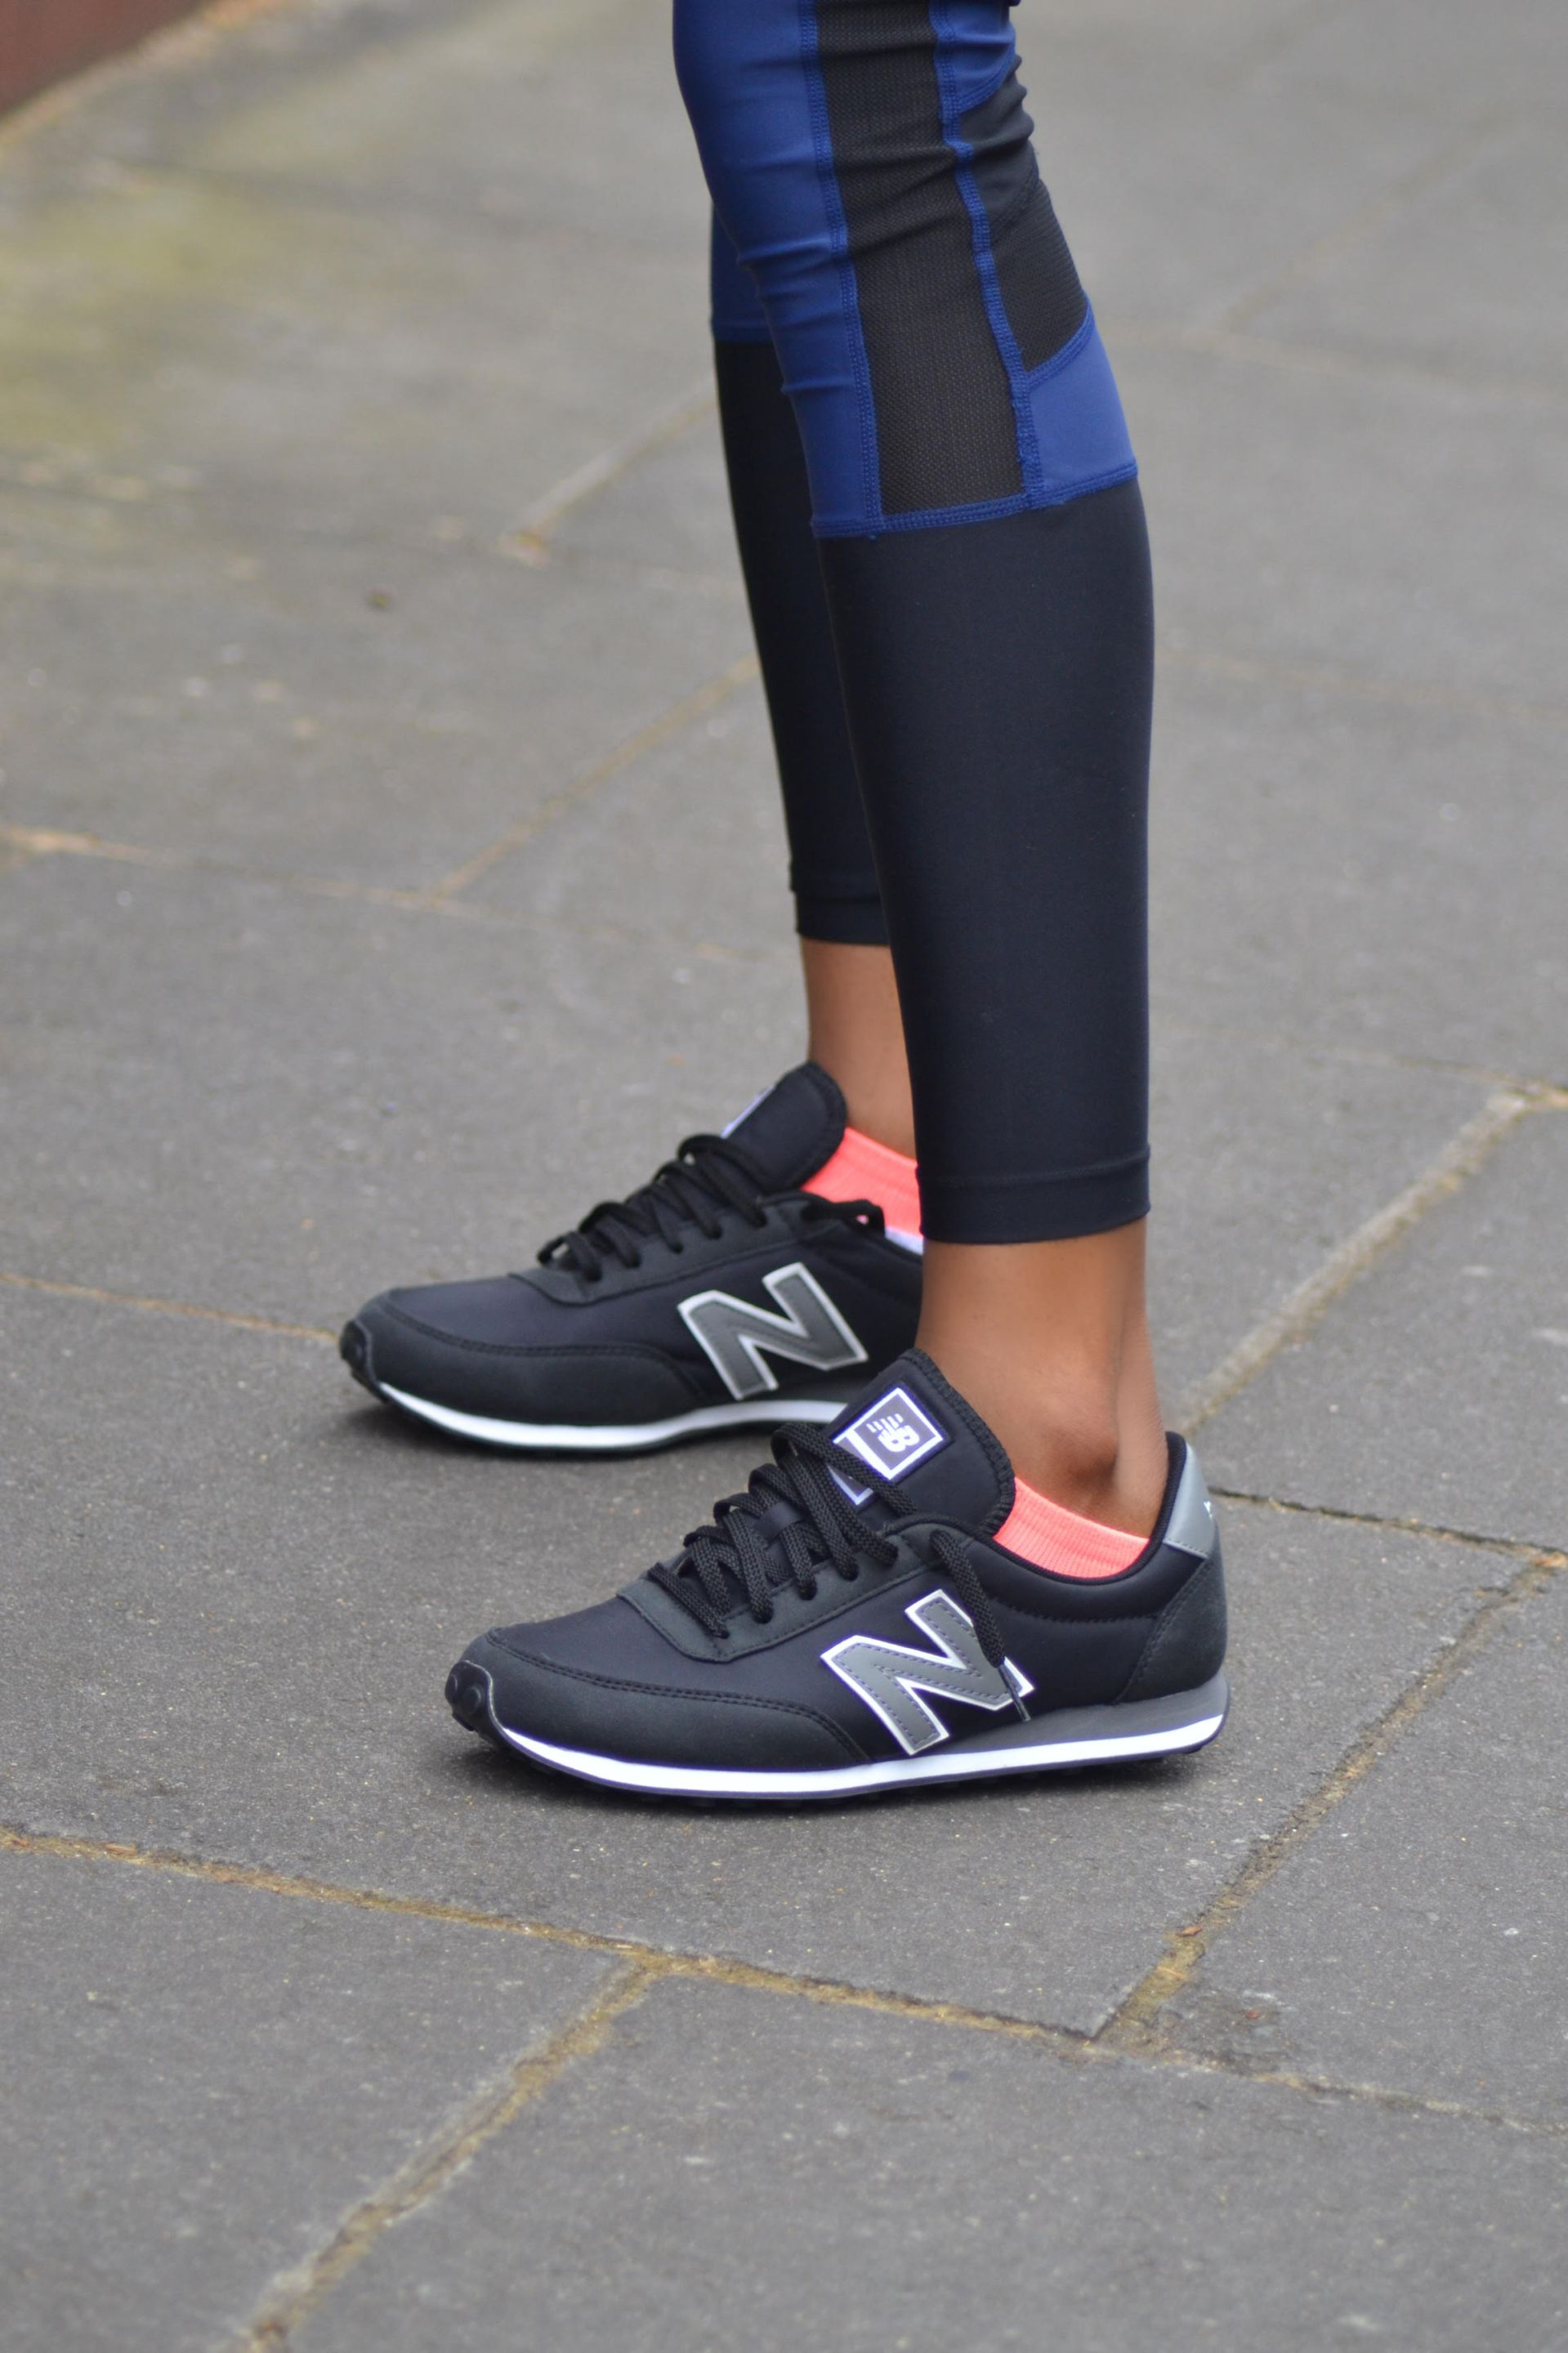 new balance trainers blush london style shoot blog